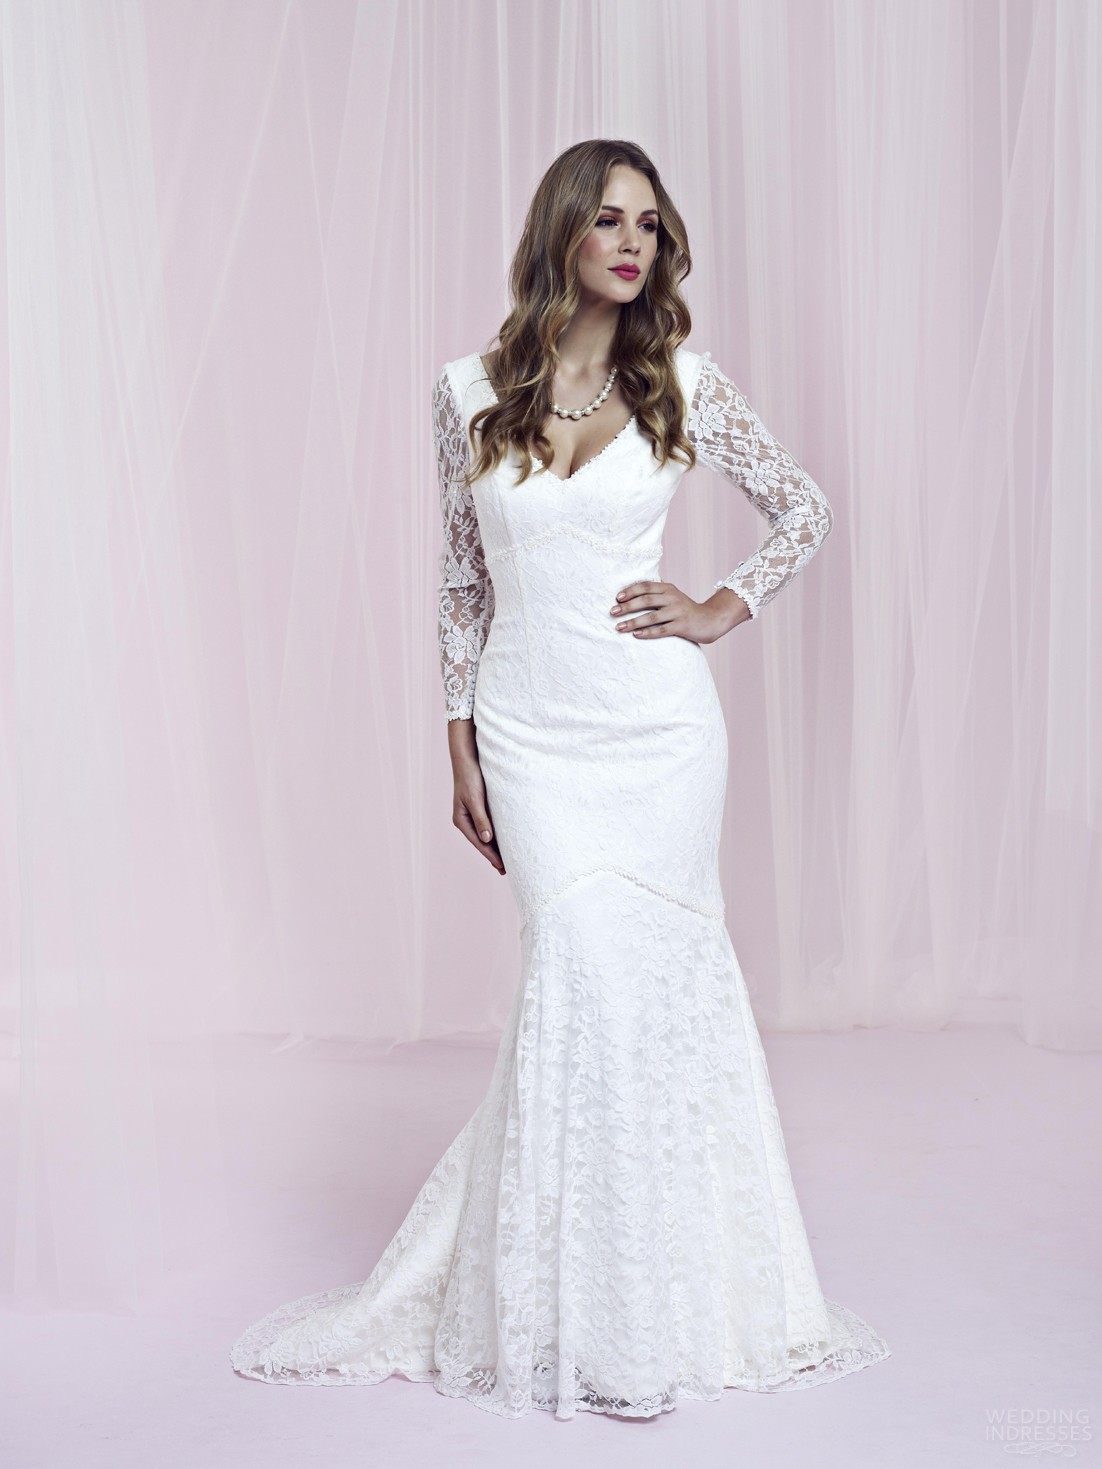 Long Sleeve Lace Flare Dress - Beautiful And Elegant